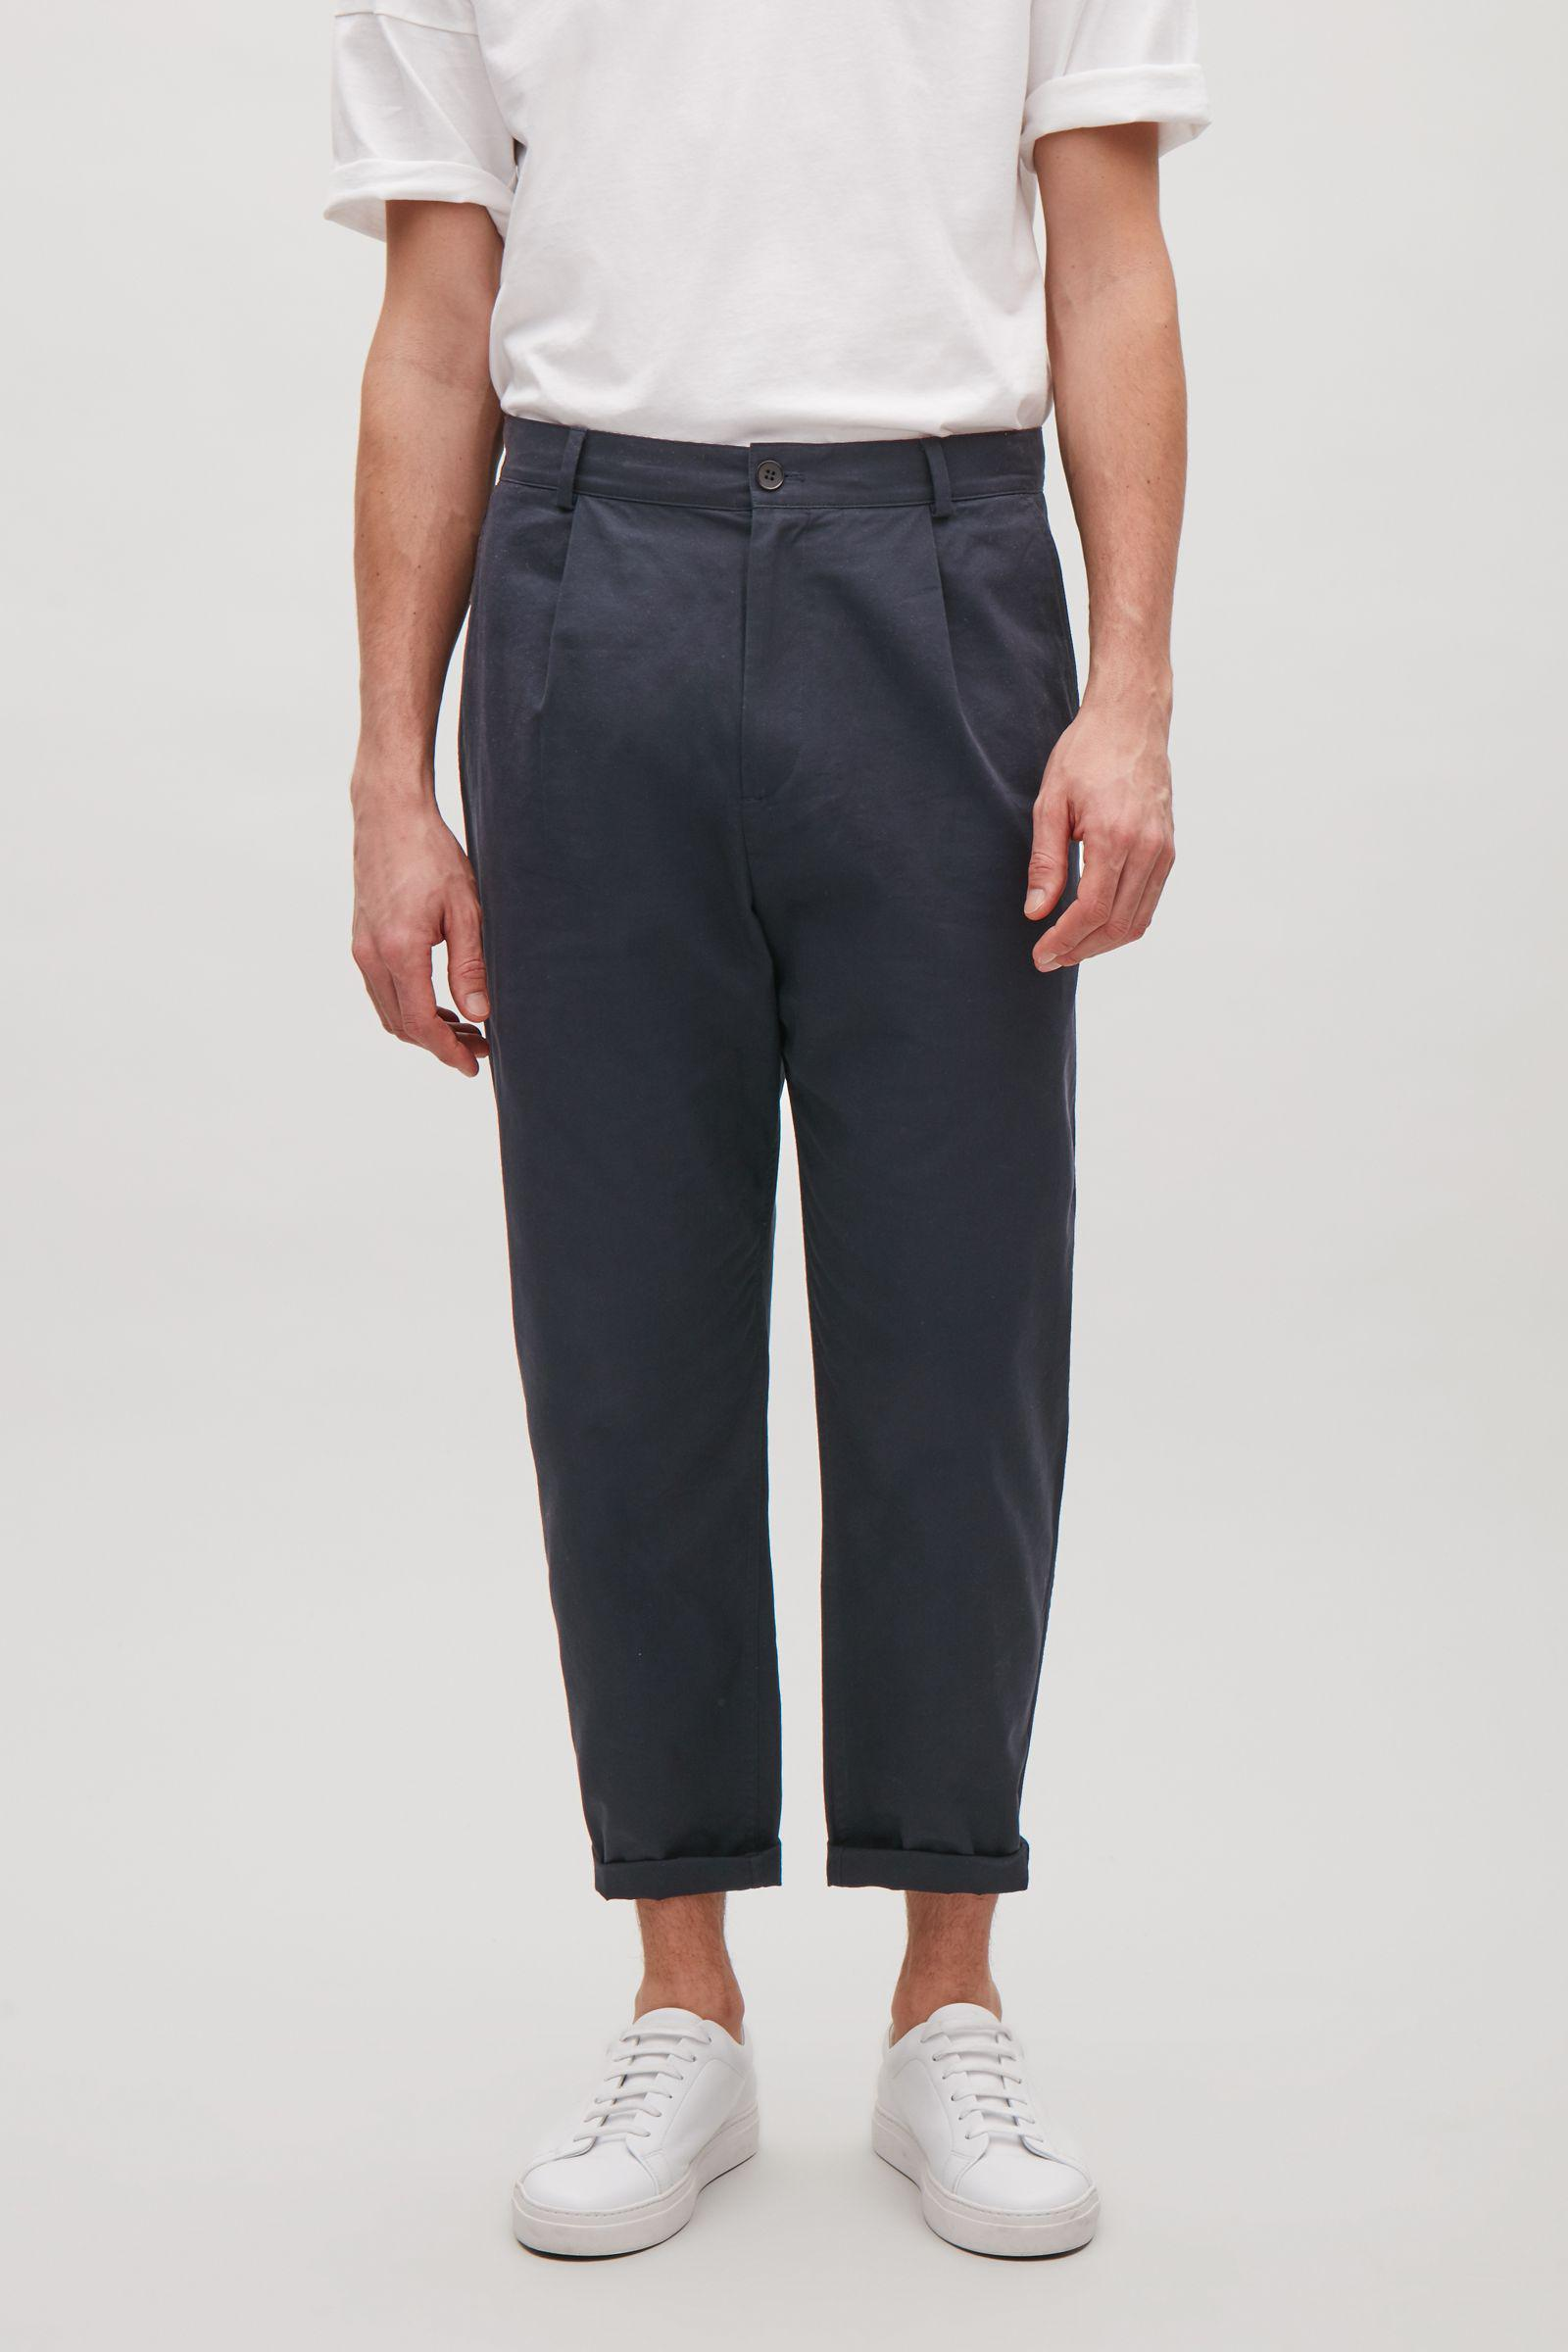 COS Cotton Relaxed Chino Trousers in Indigo (Blue) for Men